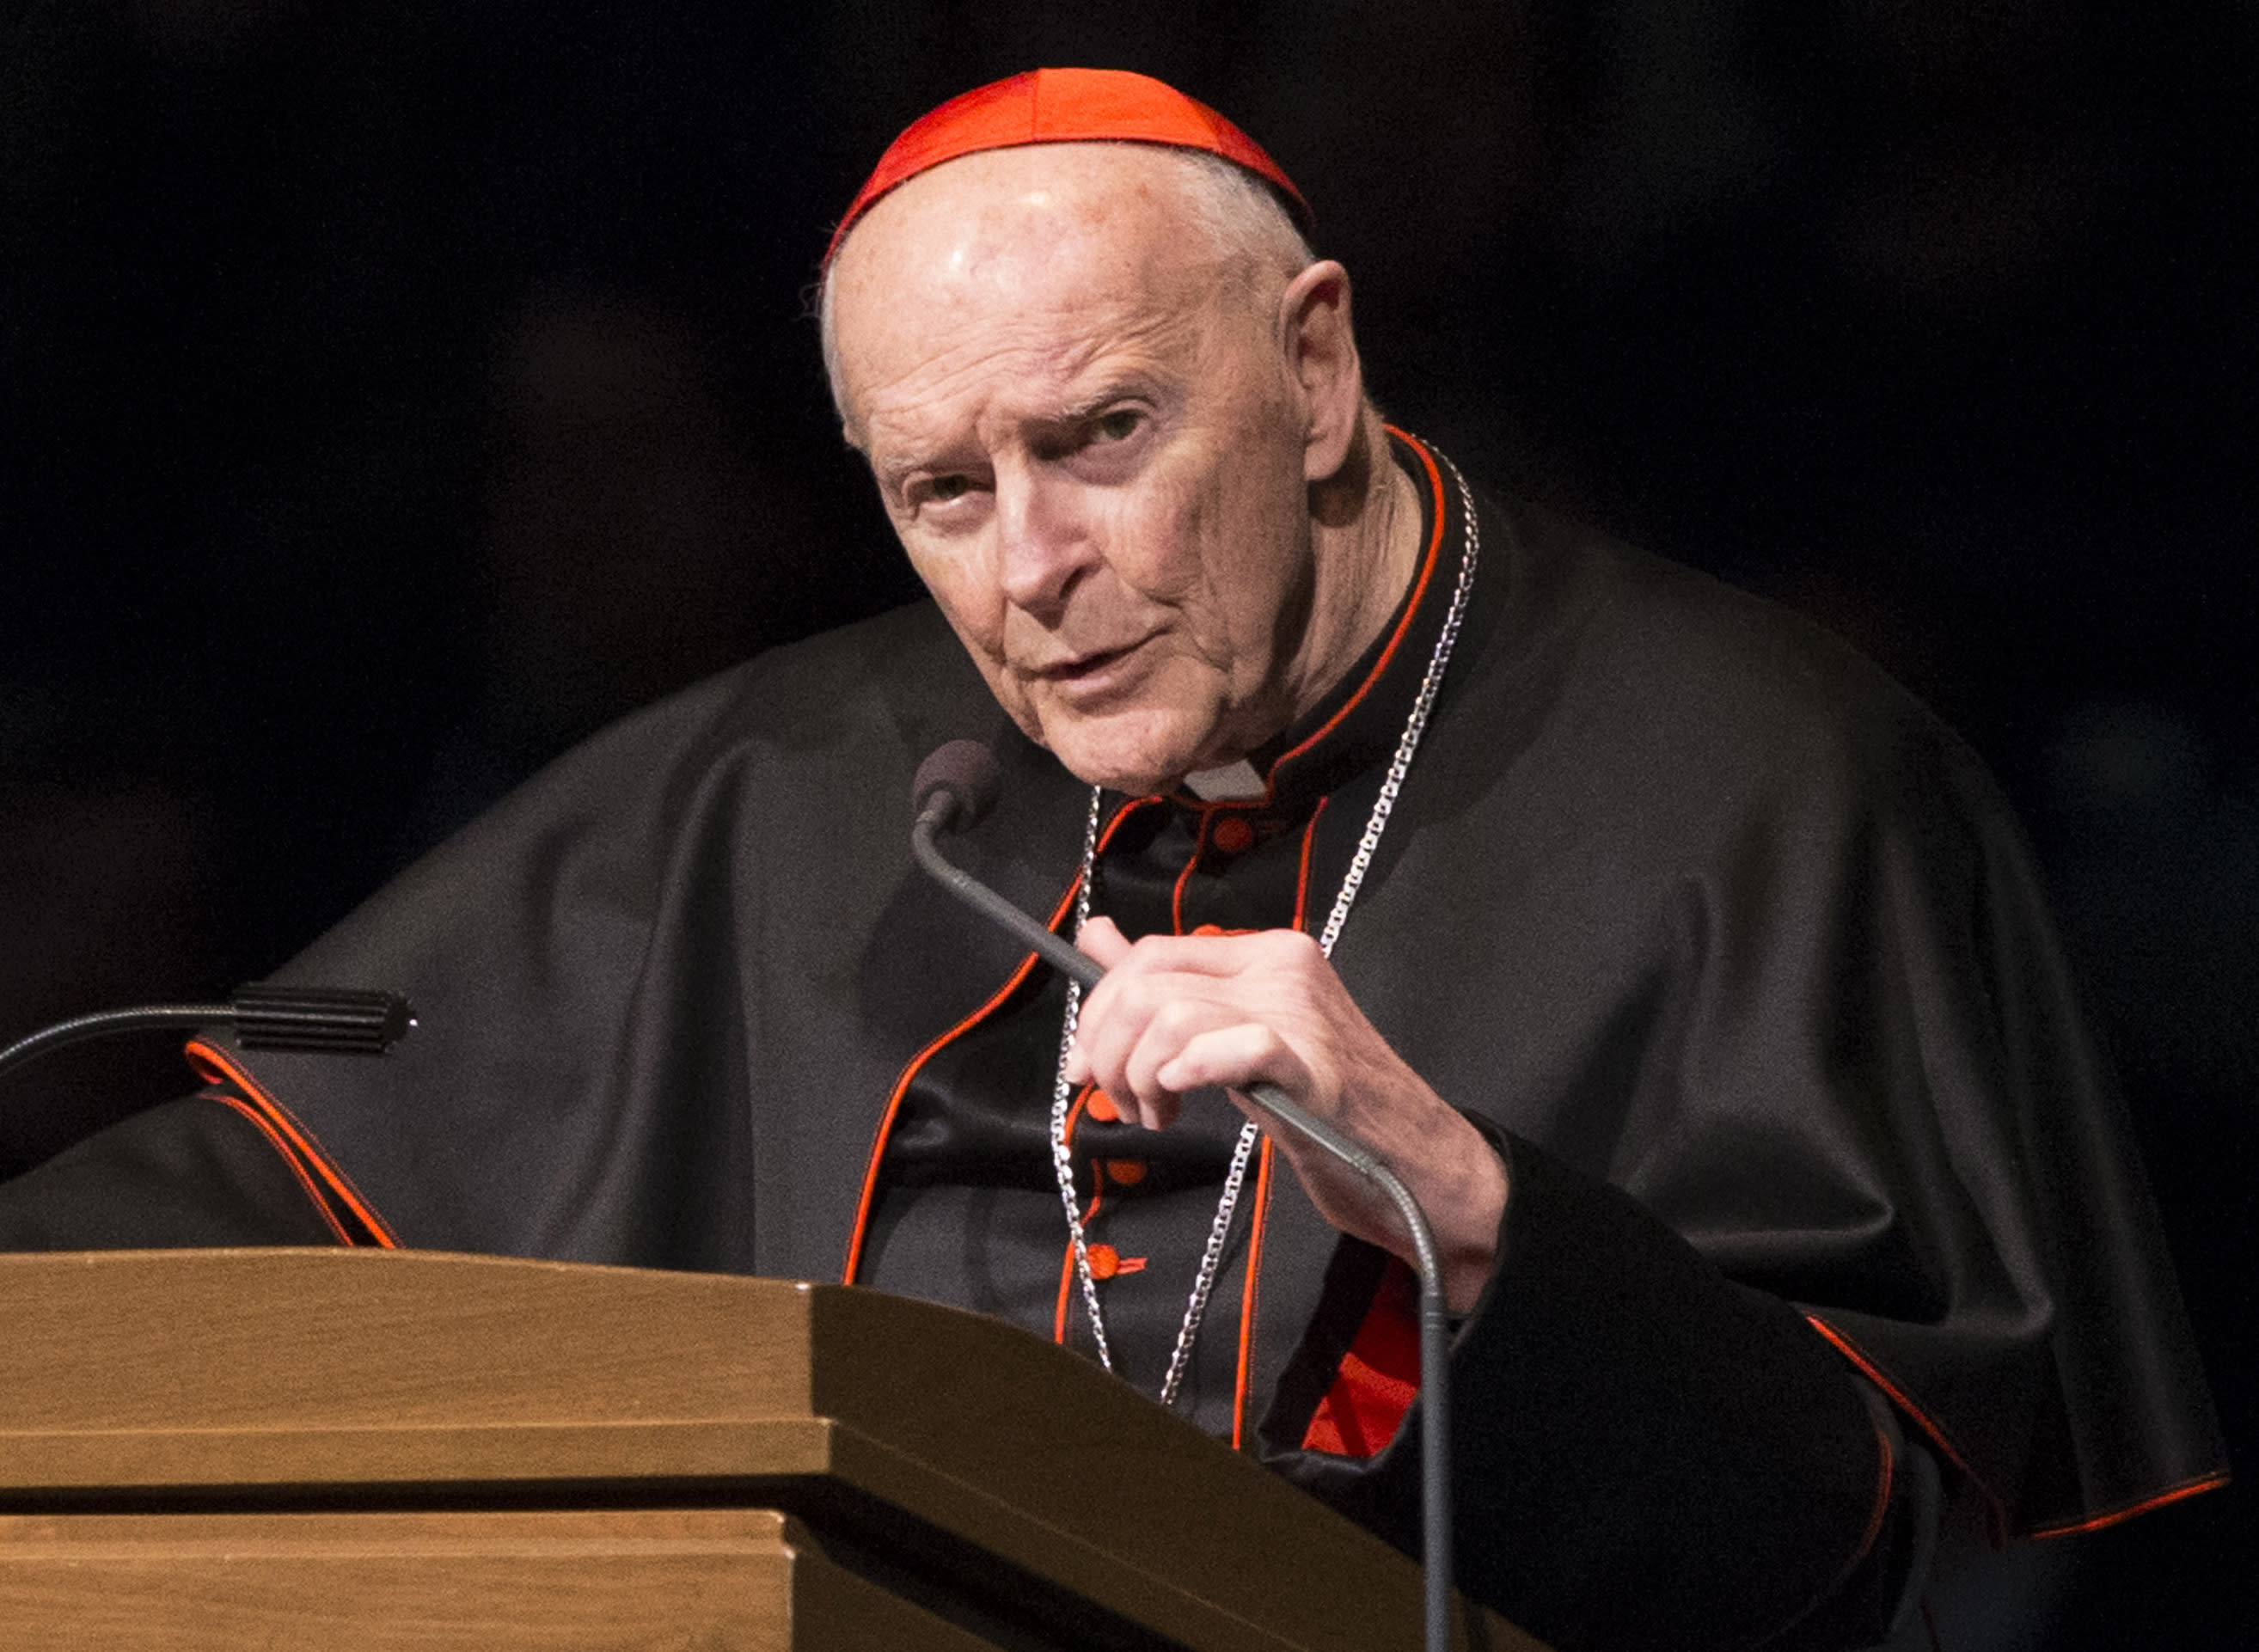 FILE - In this Wednesday, March 4, 2015, file photo, Cardinal Theodore Edgar McCarrick speaks during a memorial service in South Bend, Ind. McCarrick has been removed from public ministry since June 20, 2018, pending an investigation into allegations of sexual abuse. (Robert Franklin/South Bend Tribune via AP, Pool, File)